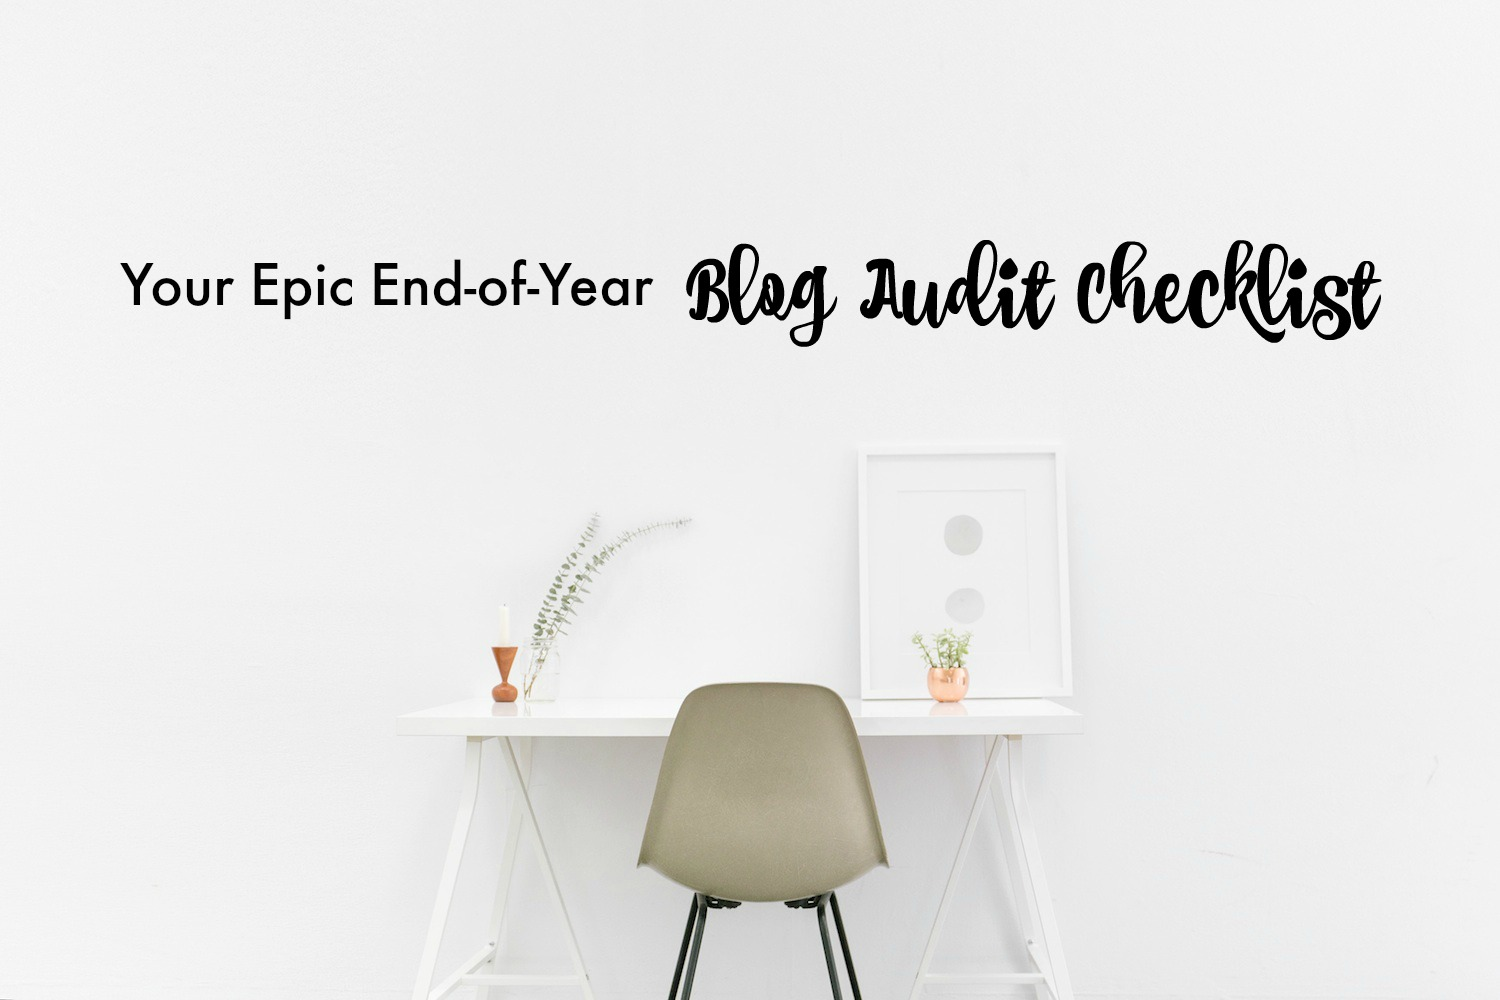 Your Epic End-of-Year Blog Audit Checklist | Get it now on ProBlogger.net